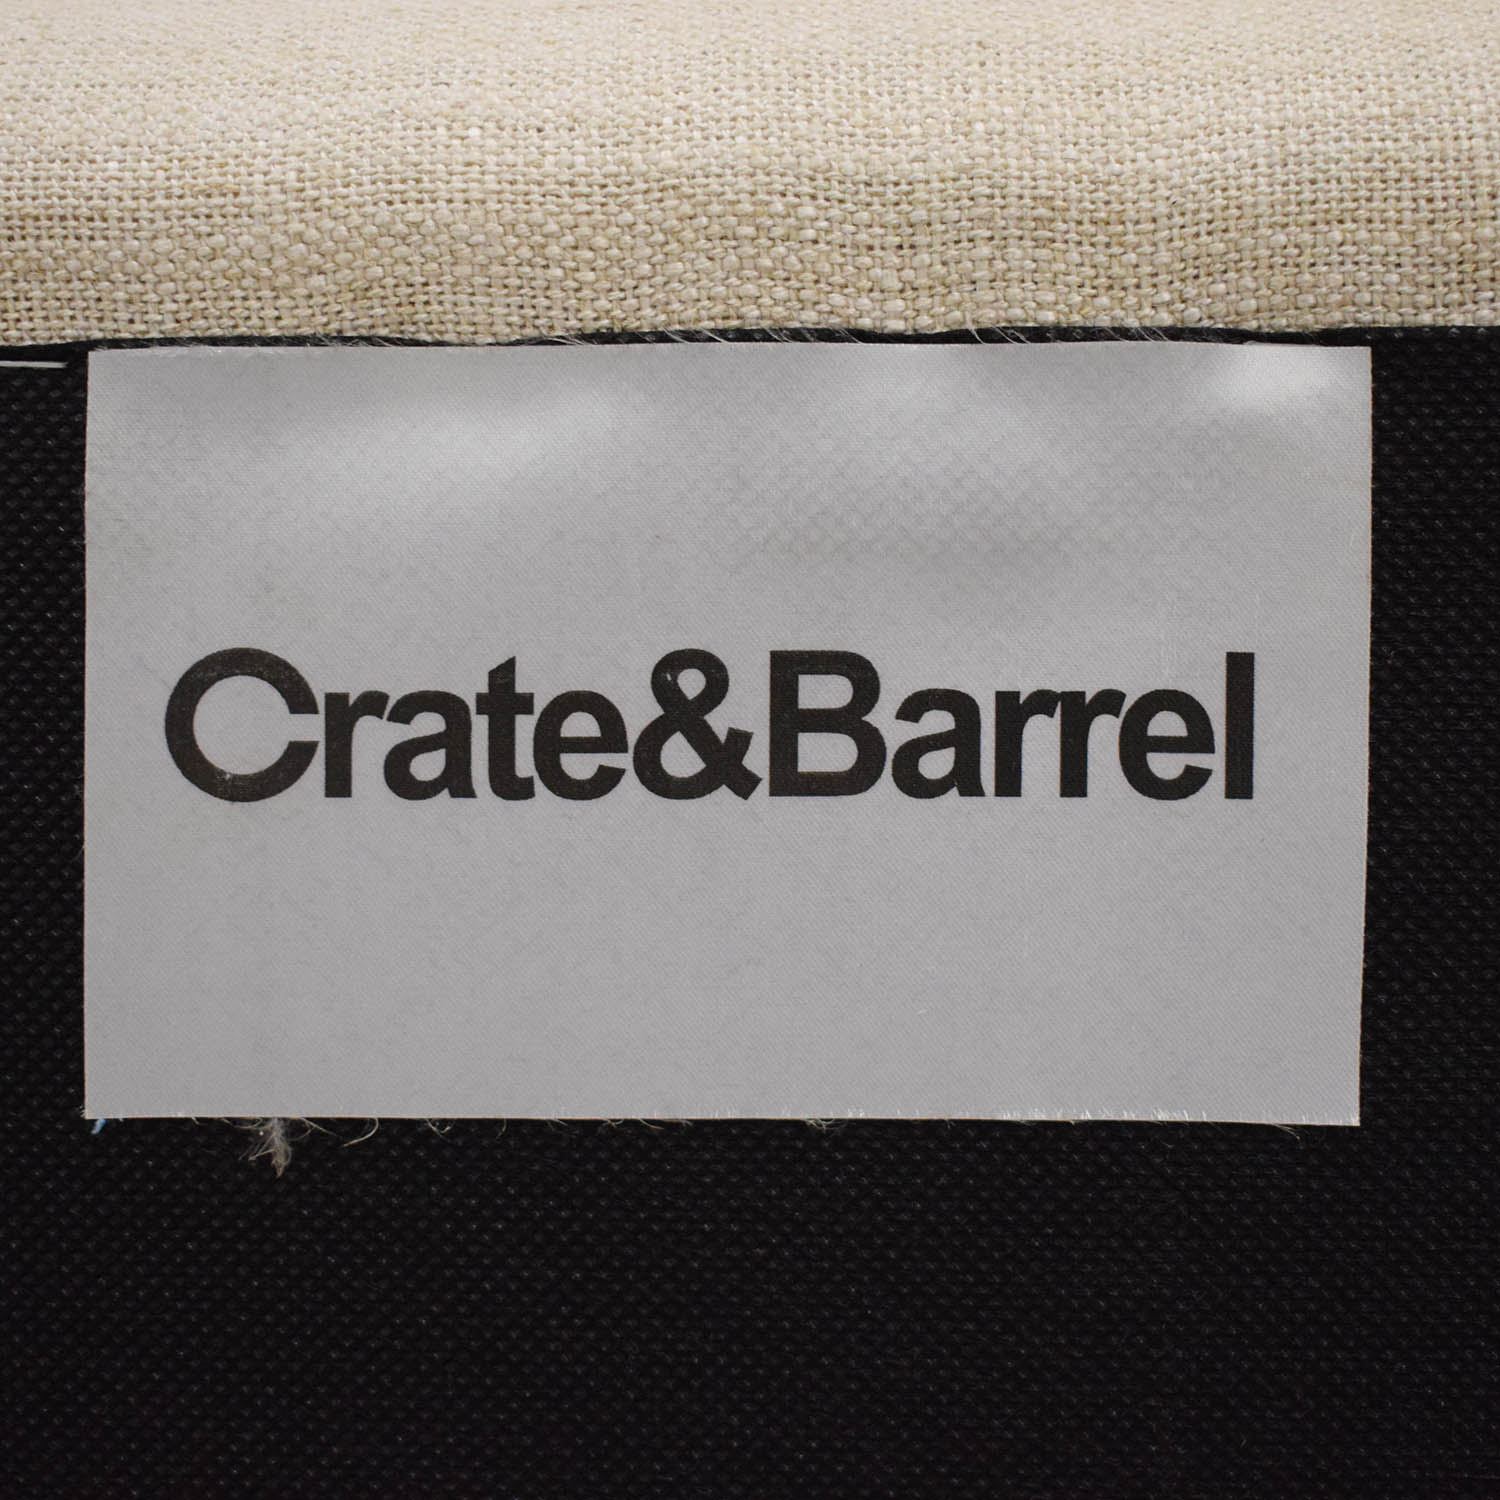 Crate & Barrel Crate & Barrel Elegant Upholstered Loveseat for sale